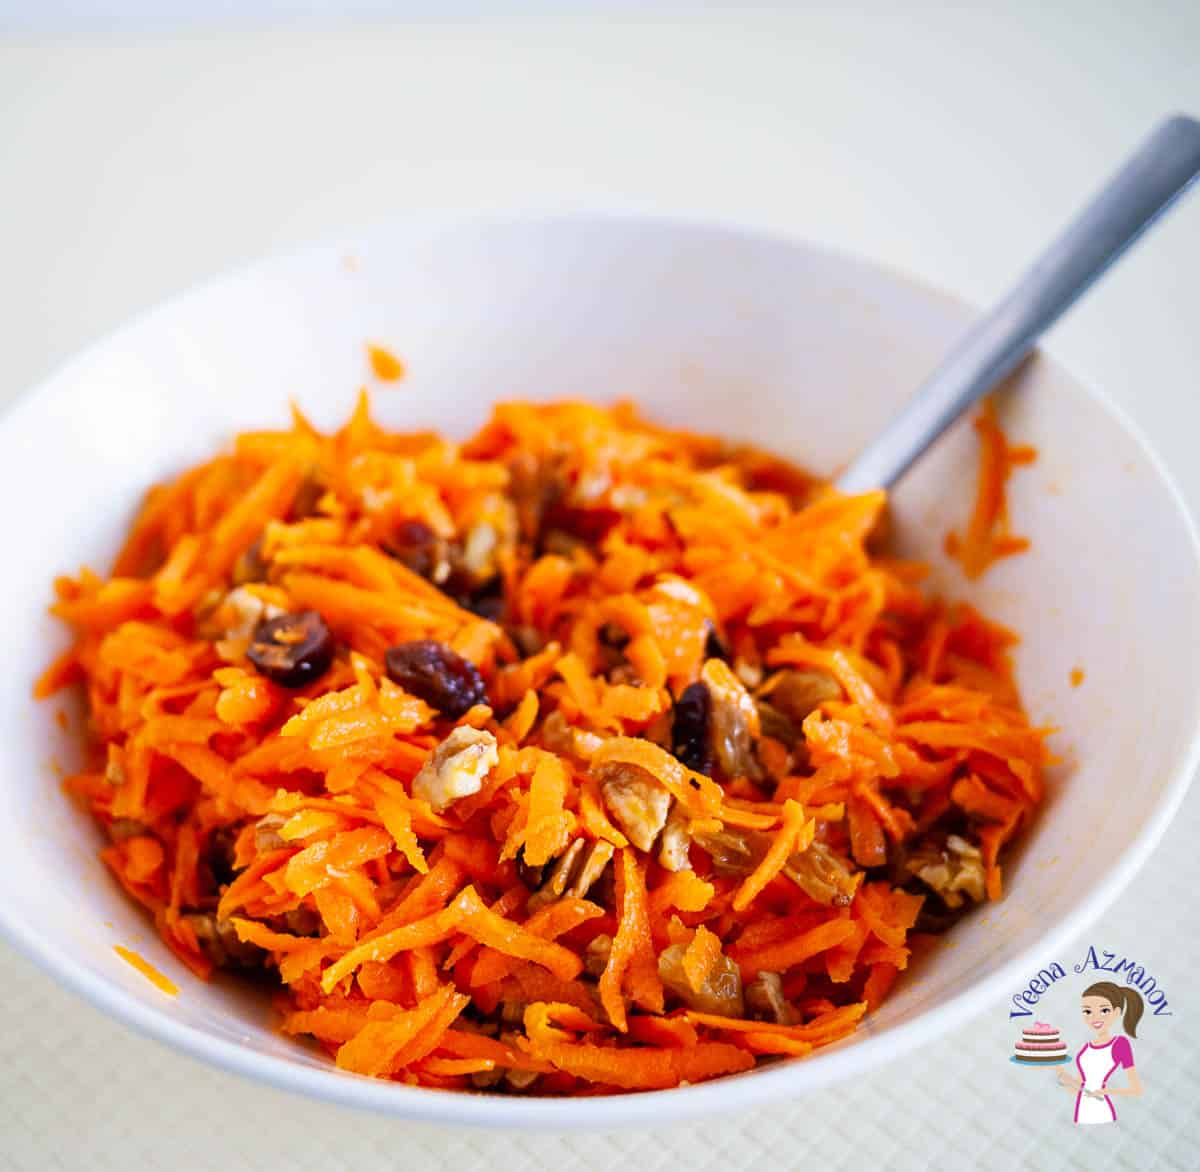 A bowl with carrot salad